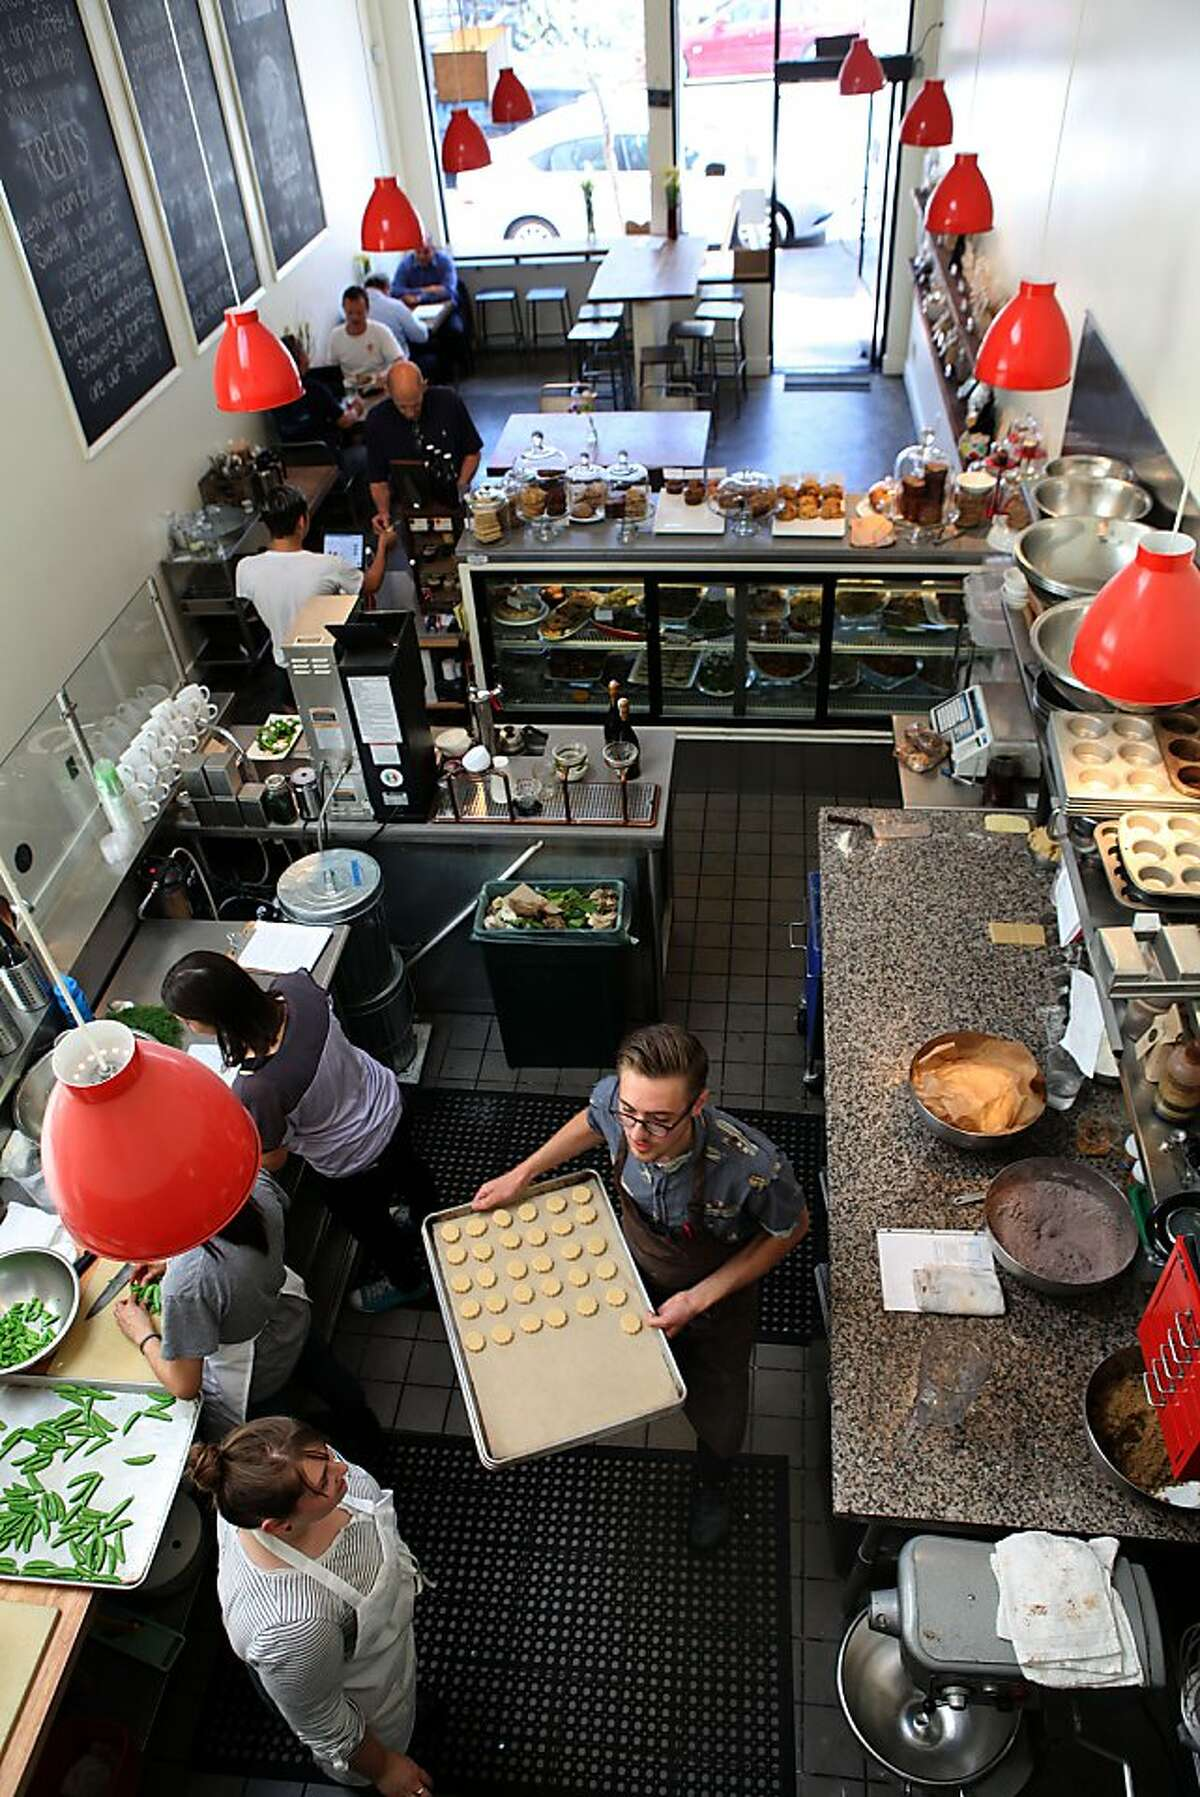 Workers prepare food at Square Meals, which features ribollita soup made with white beans, squash and kale, and a salad of sugar snap peas, radishes, pea tendrils and yogurt cheese.